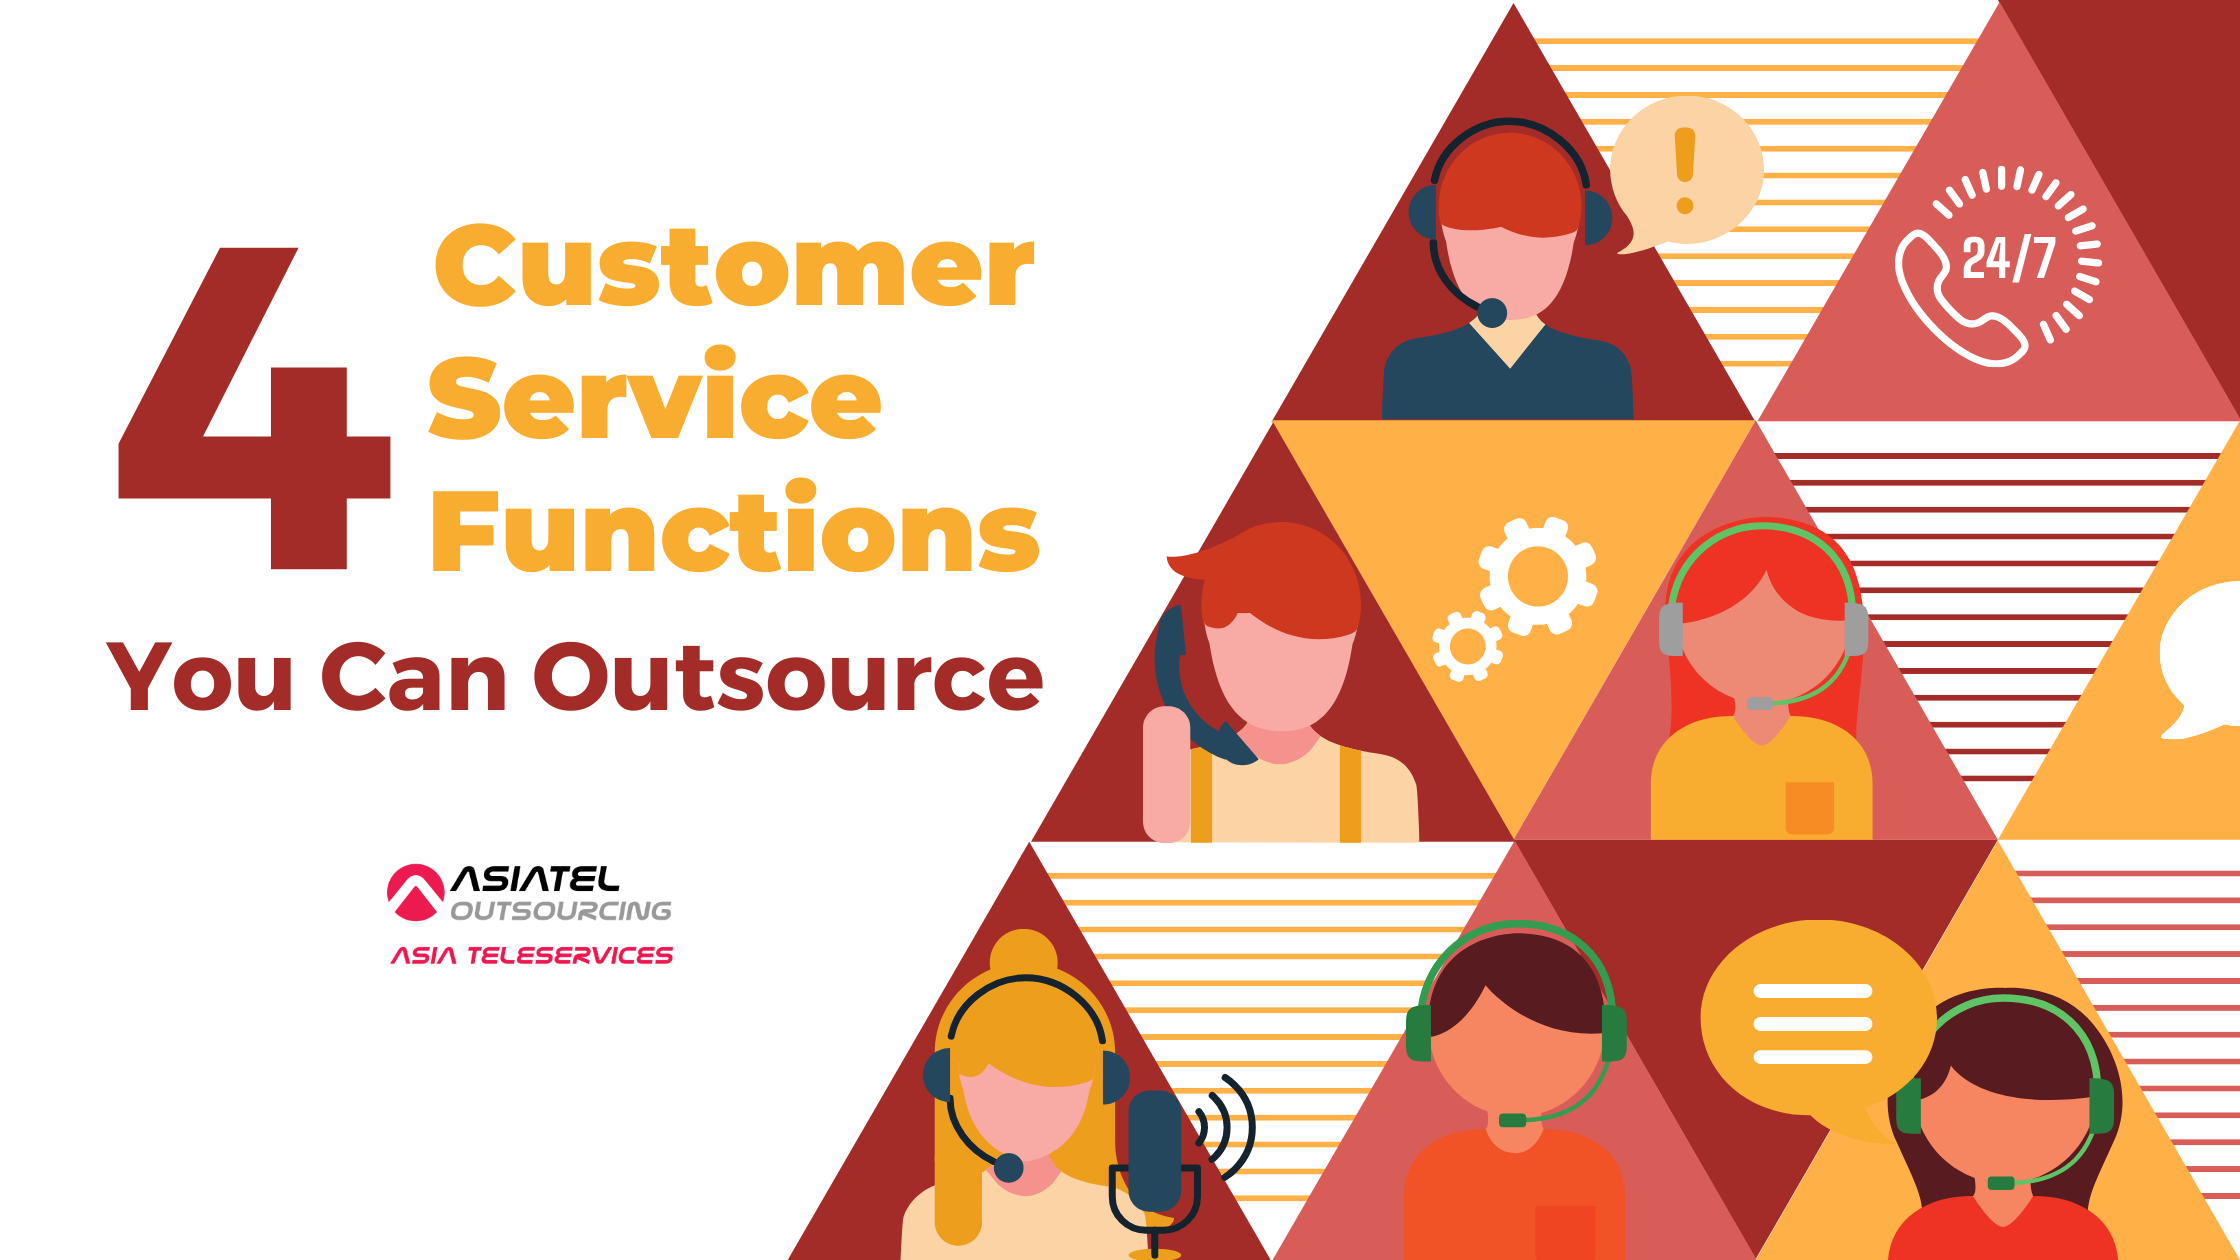 4 Customer Service Functions You Can Outsource